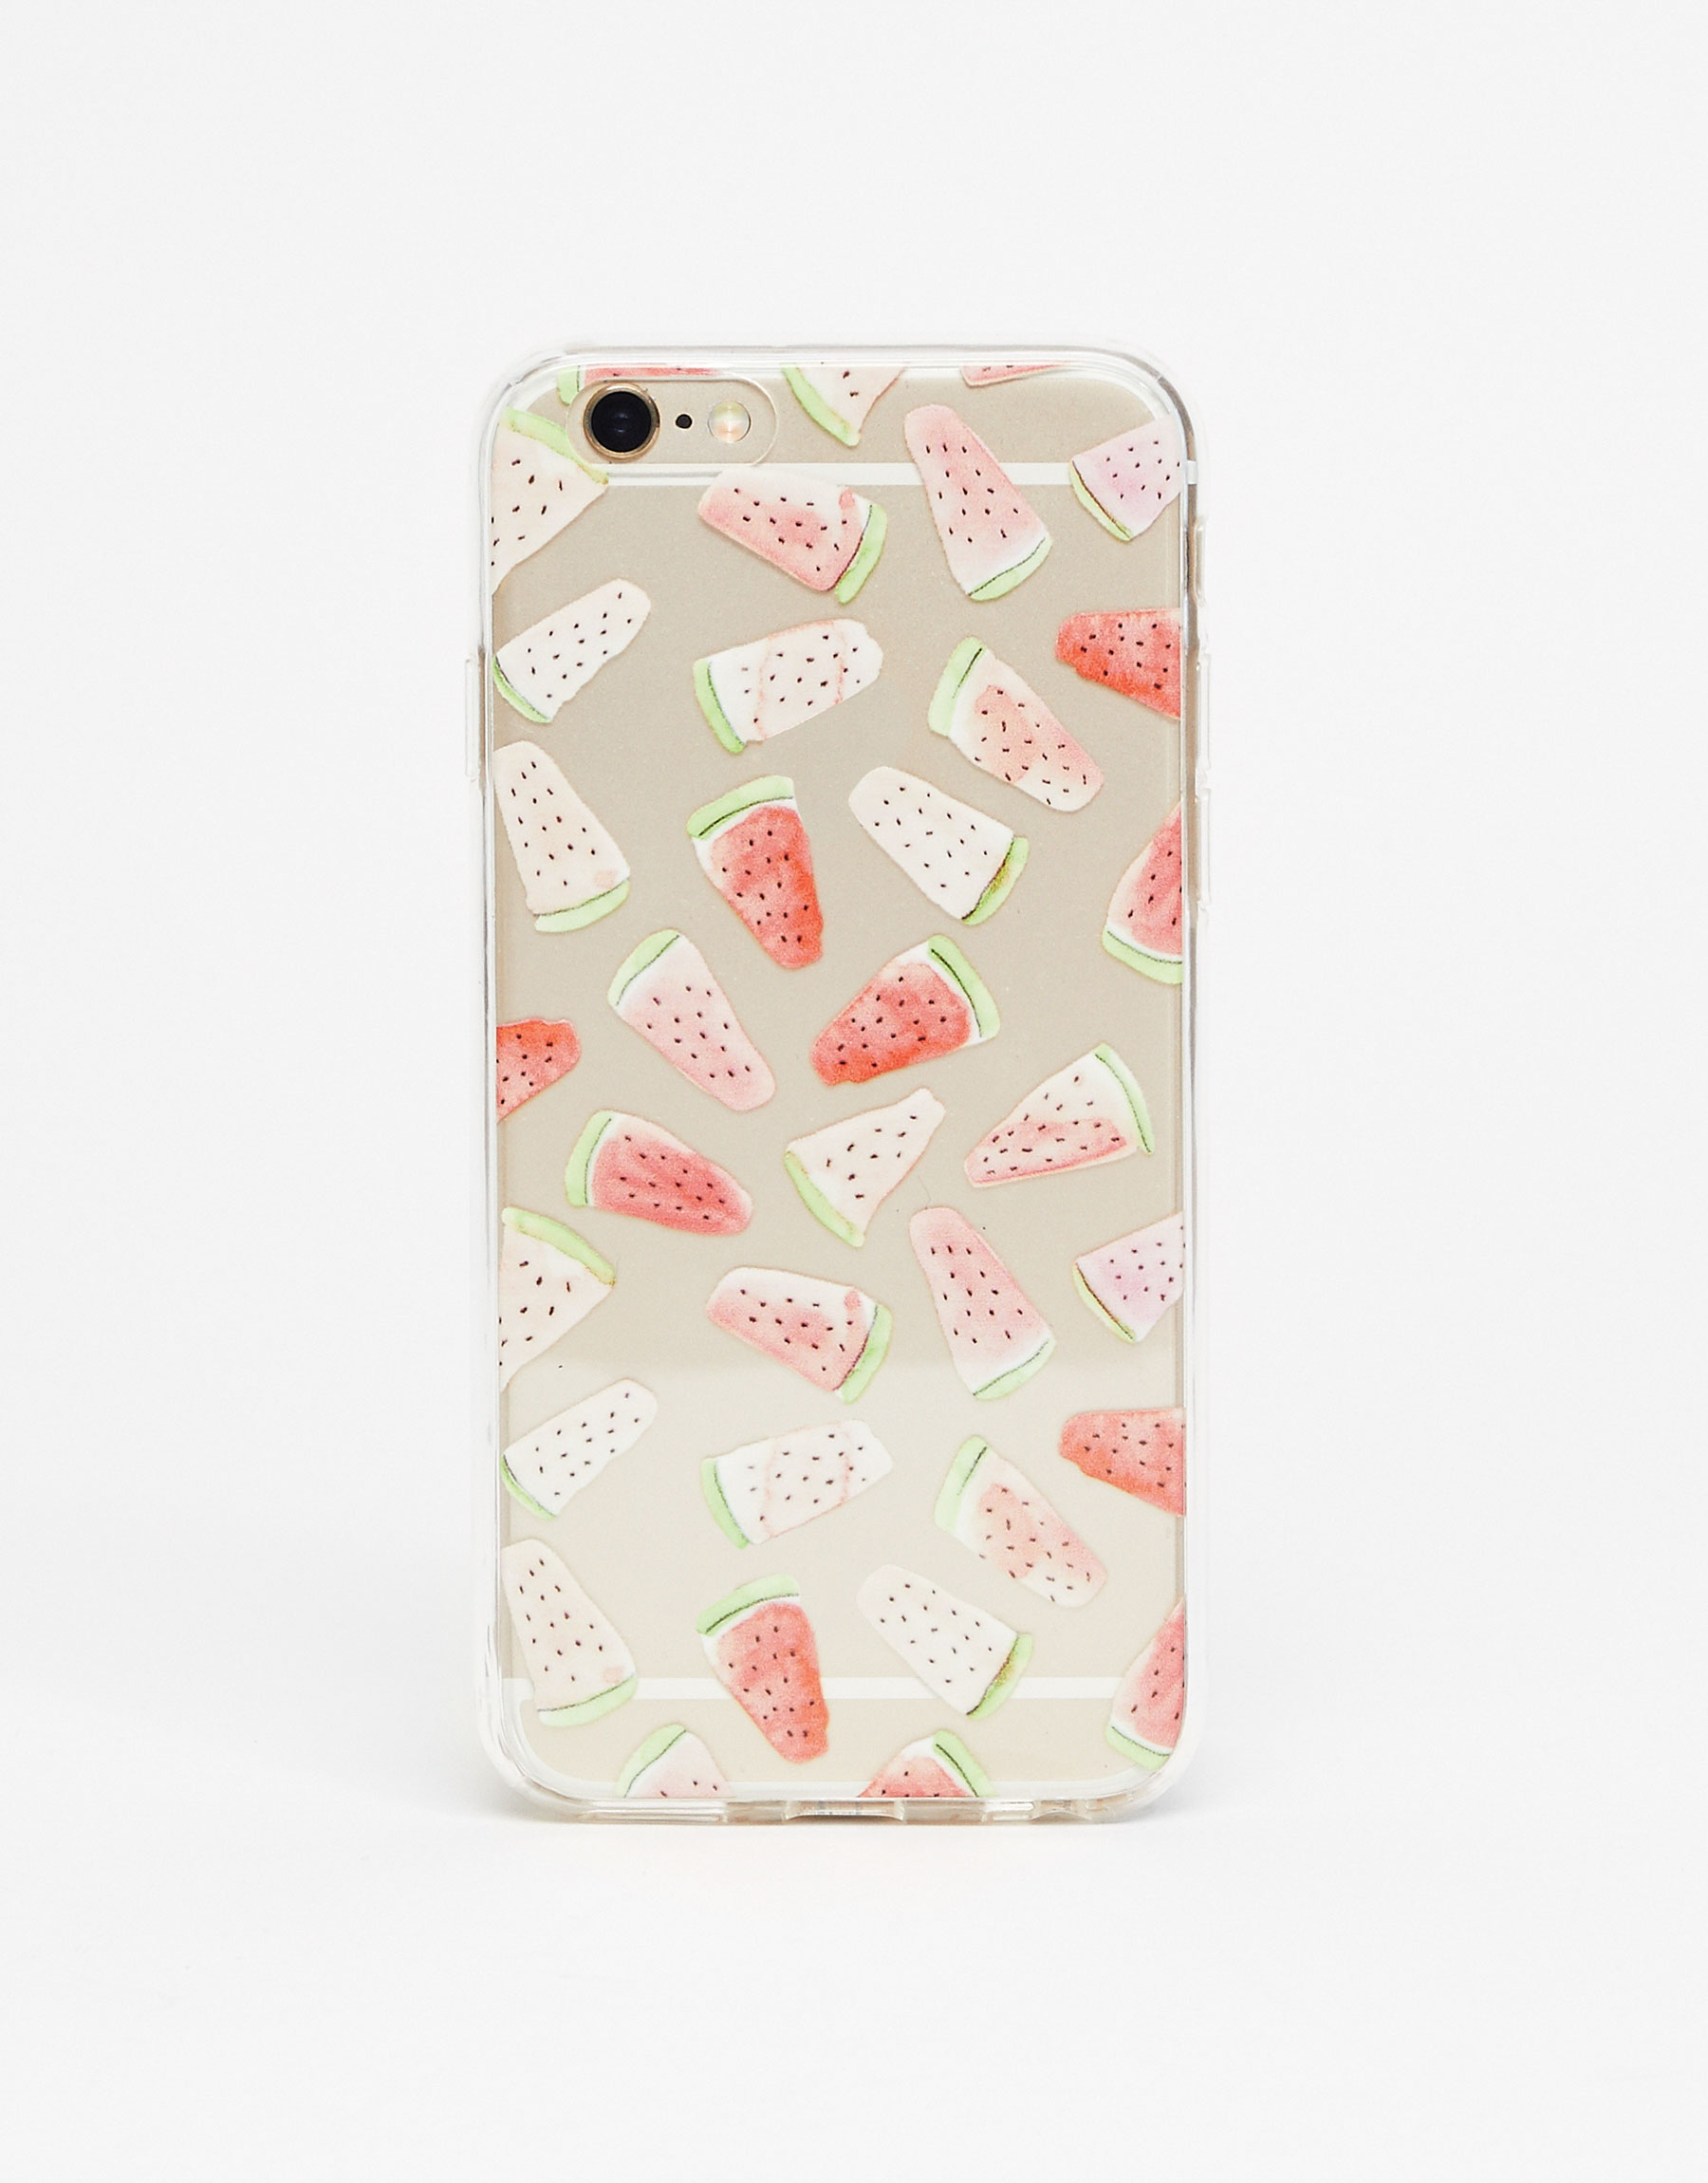 Watermelon iPhone cover